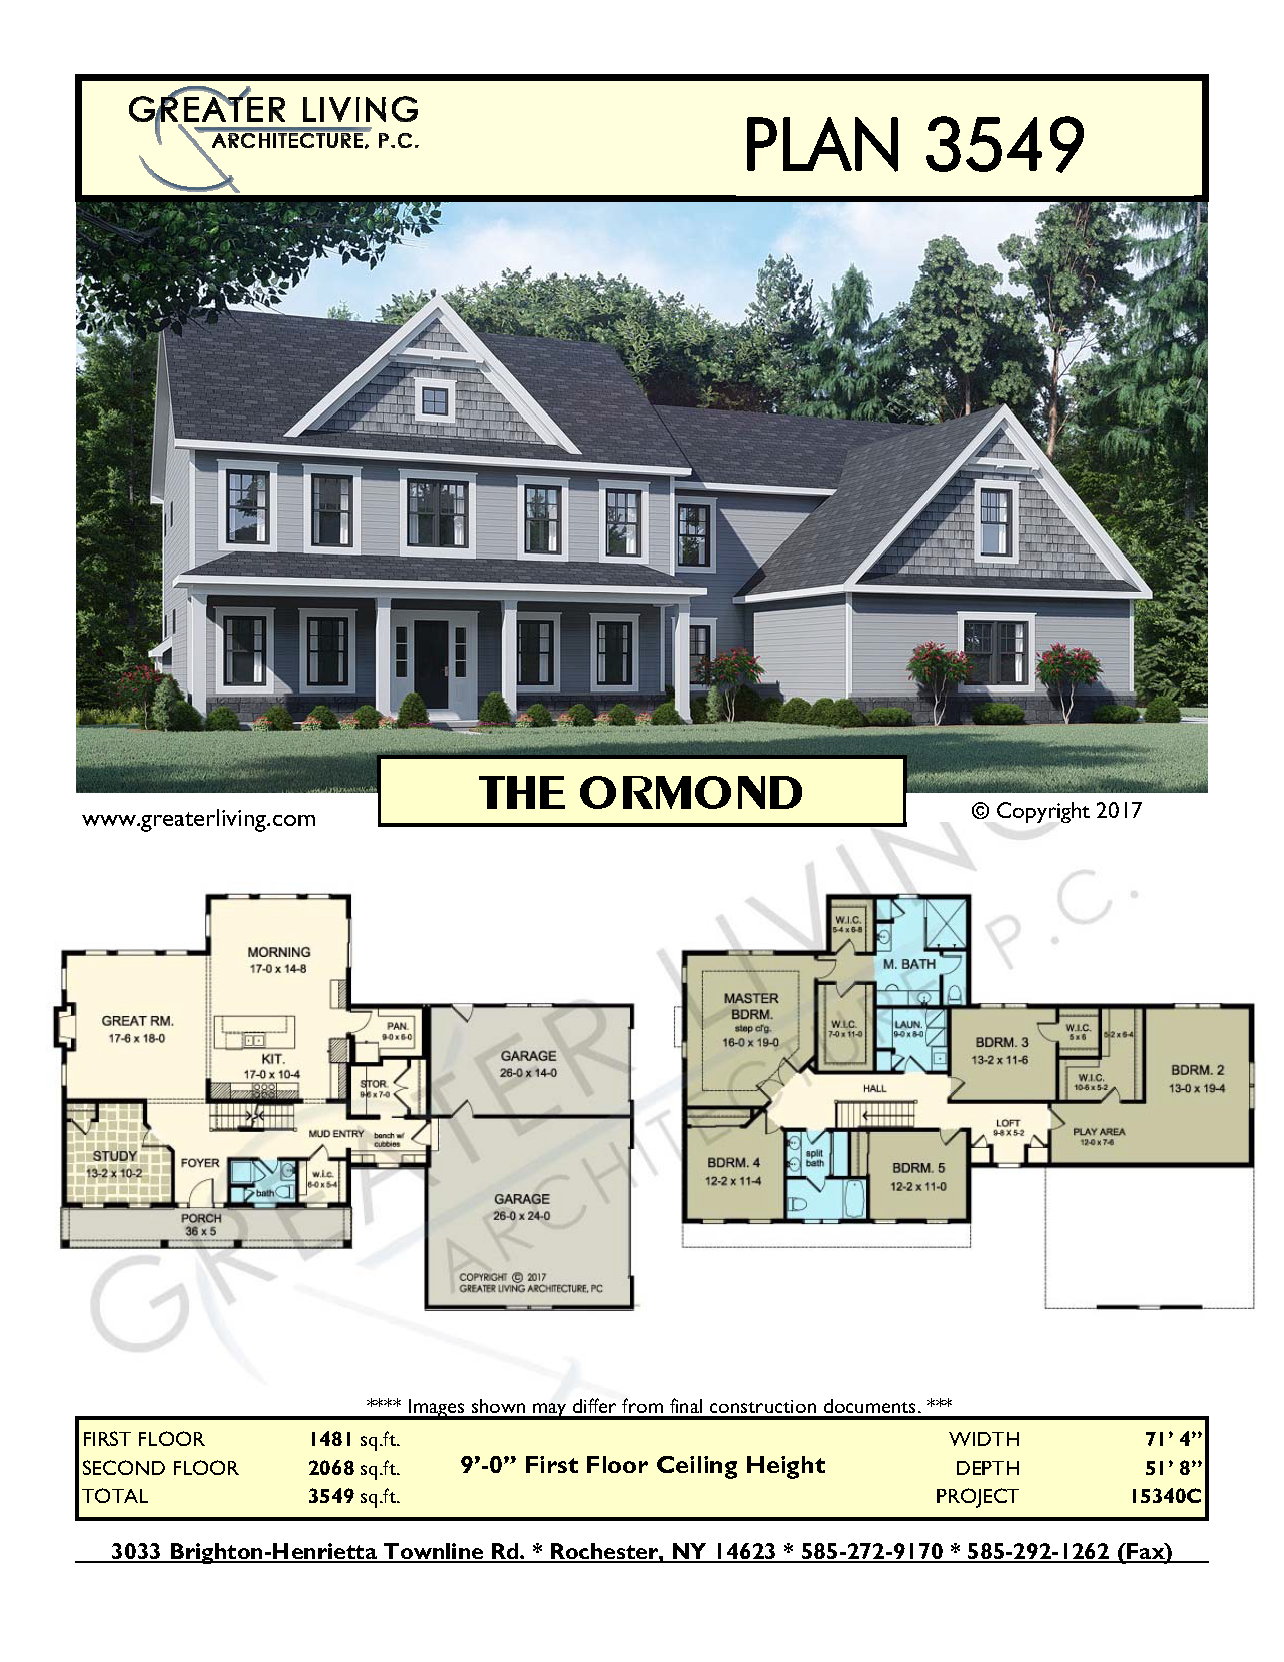 Plan 3549 The Ormond Two Story House Plan Greater Living Architecture Residential Architecture Sims House Plans Dream House Plans Two Story House Plans